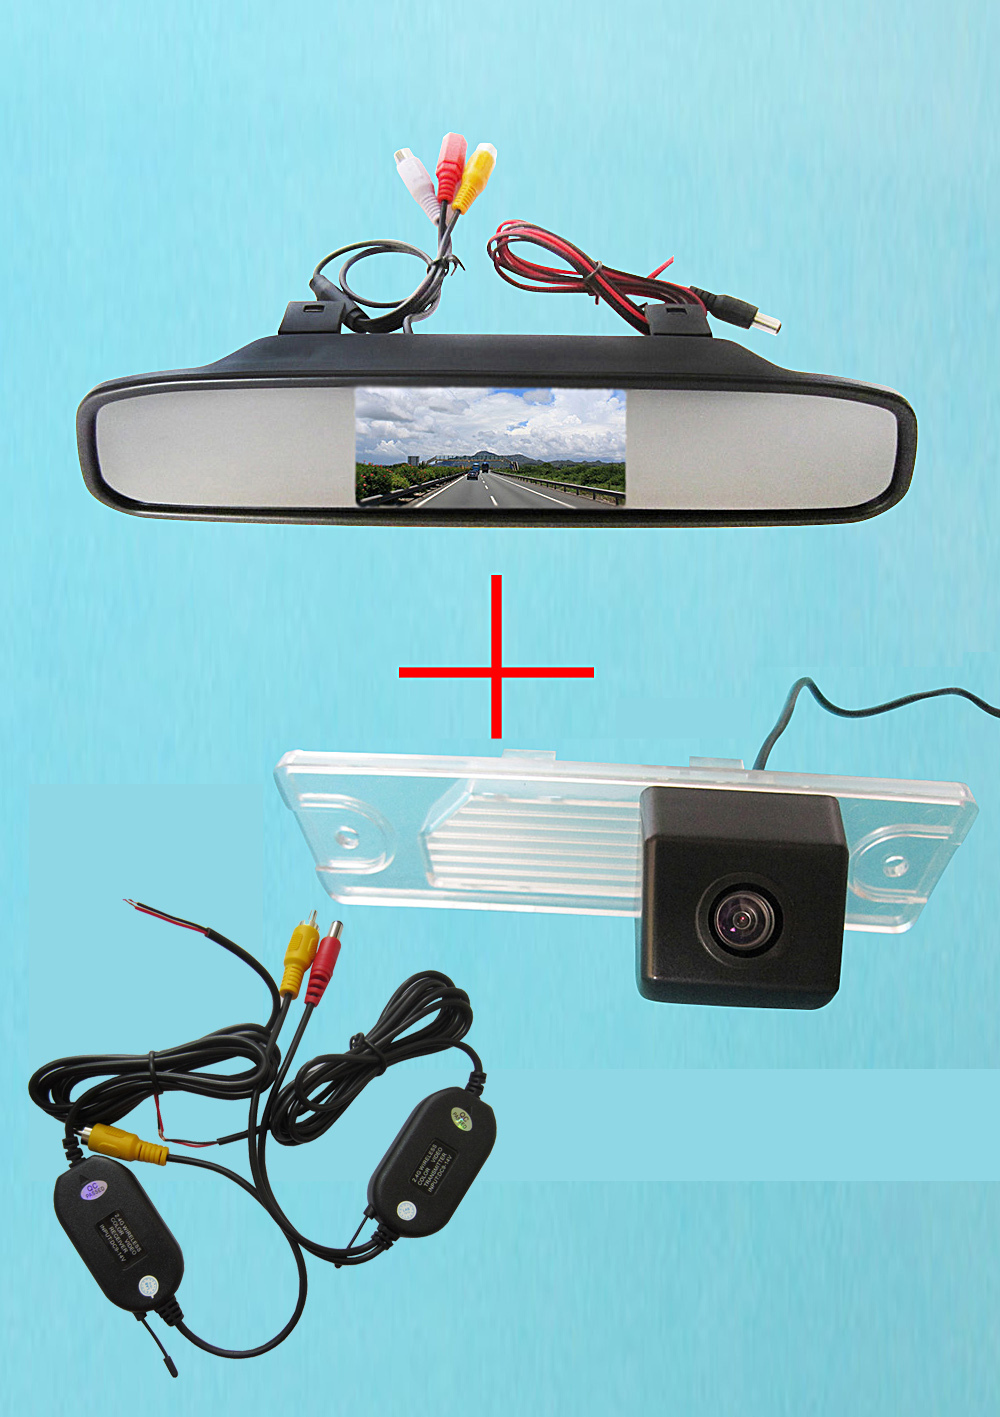 Wireless Color CCD Chip Car Rear View Camera for Renault Koleos + 4.3 Inch rearview Mirror Monitor wireless color ccd chip car rear view camera for kia sorento sportage 4 3 inch foldable lcd tft monitor